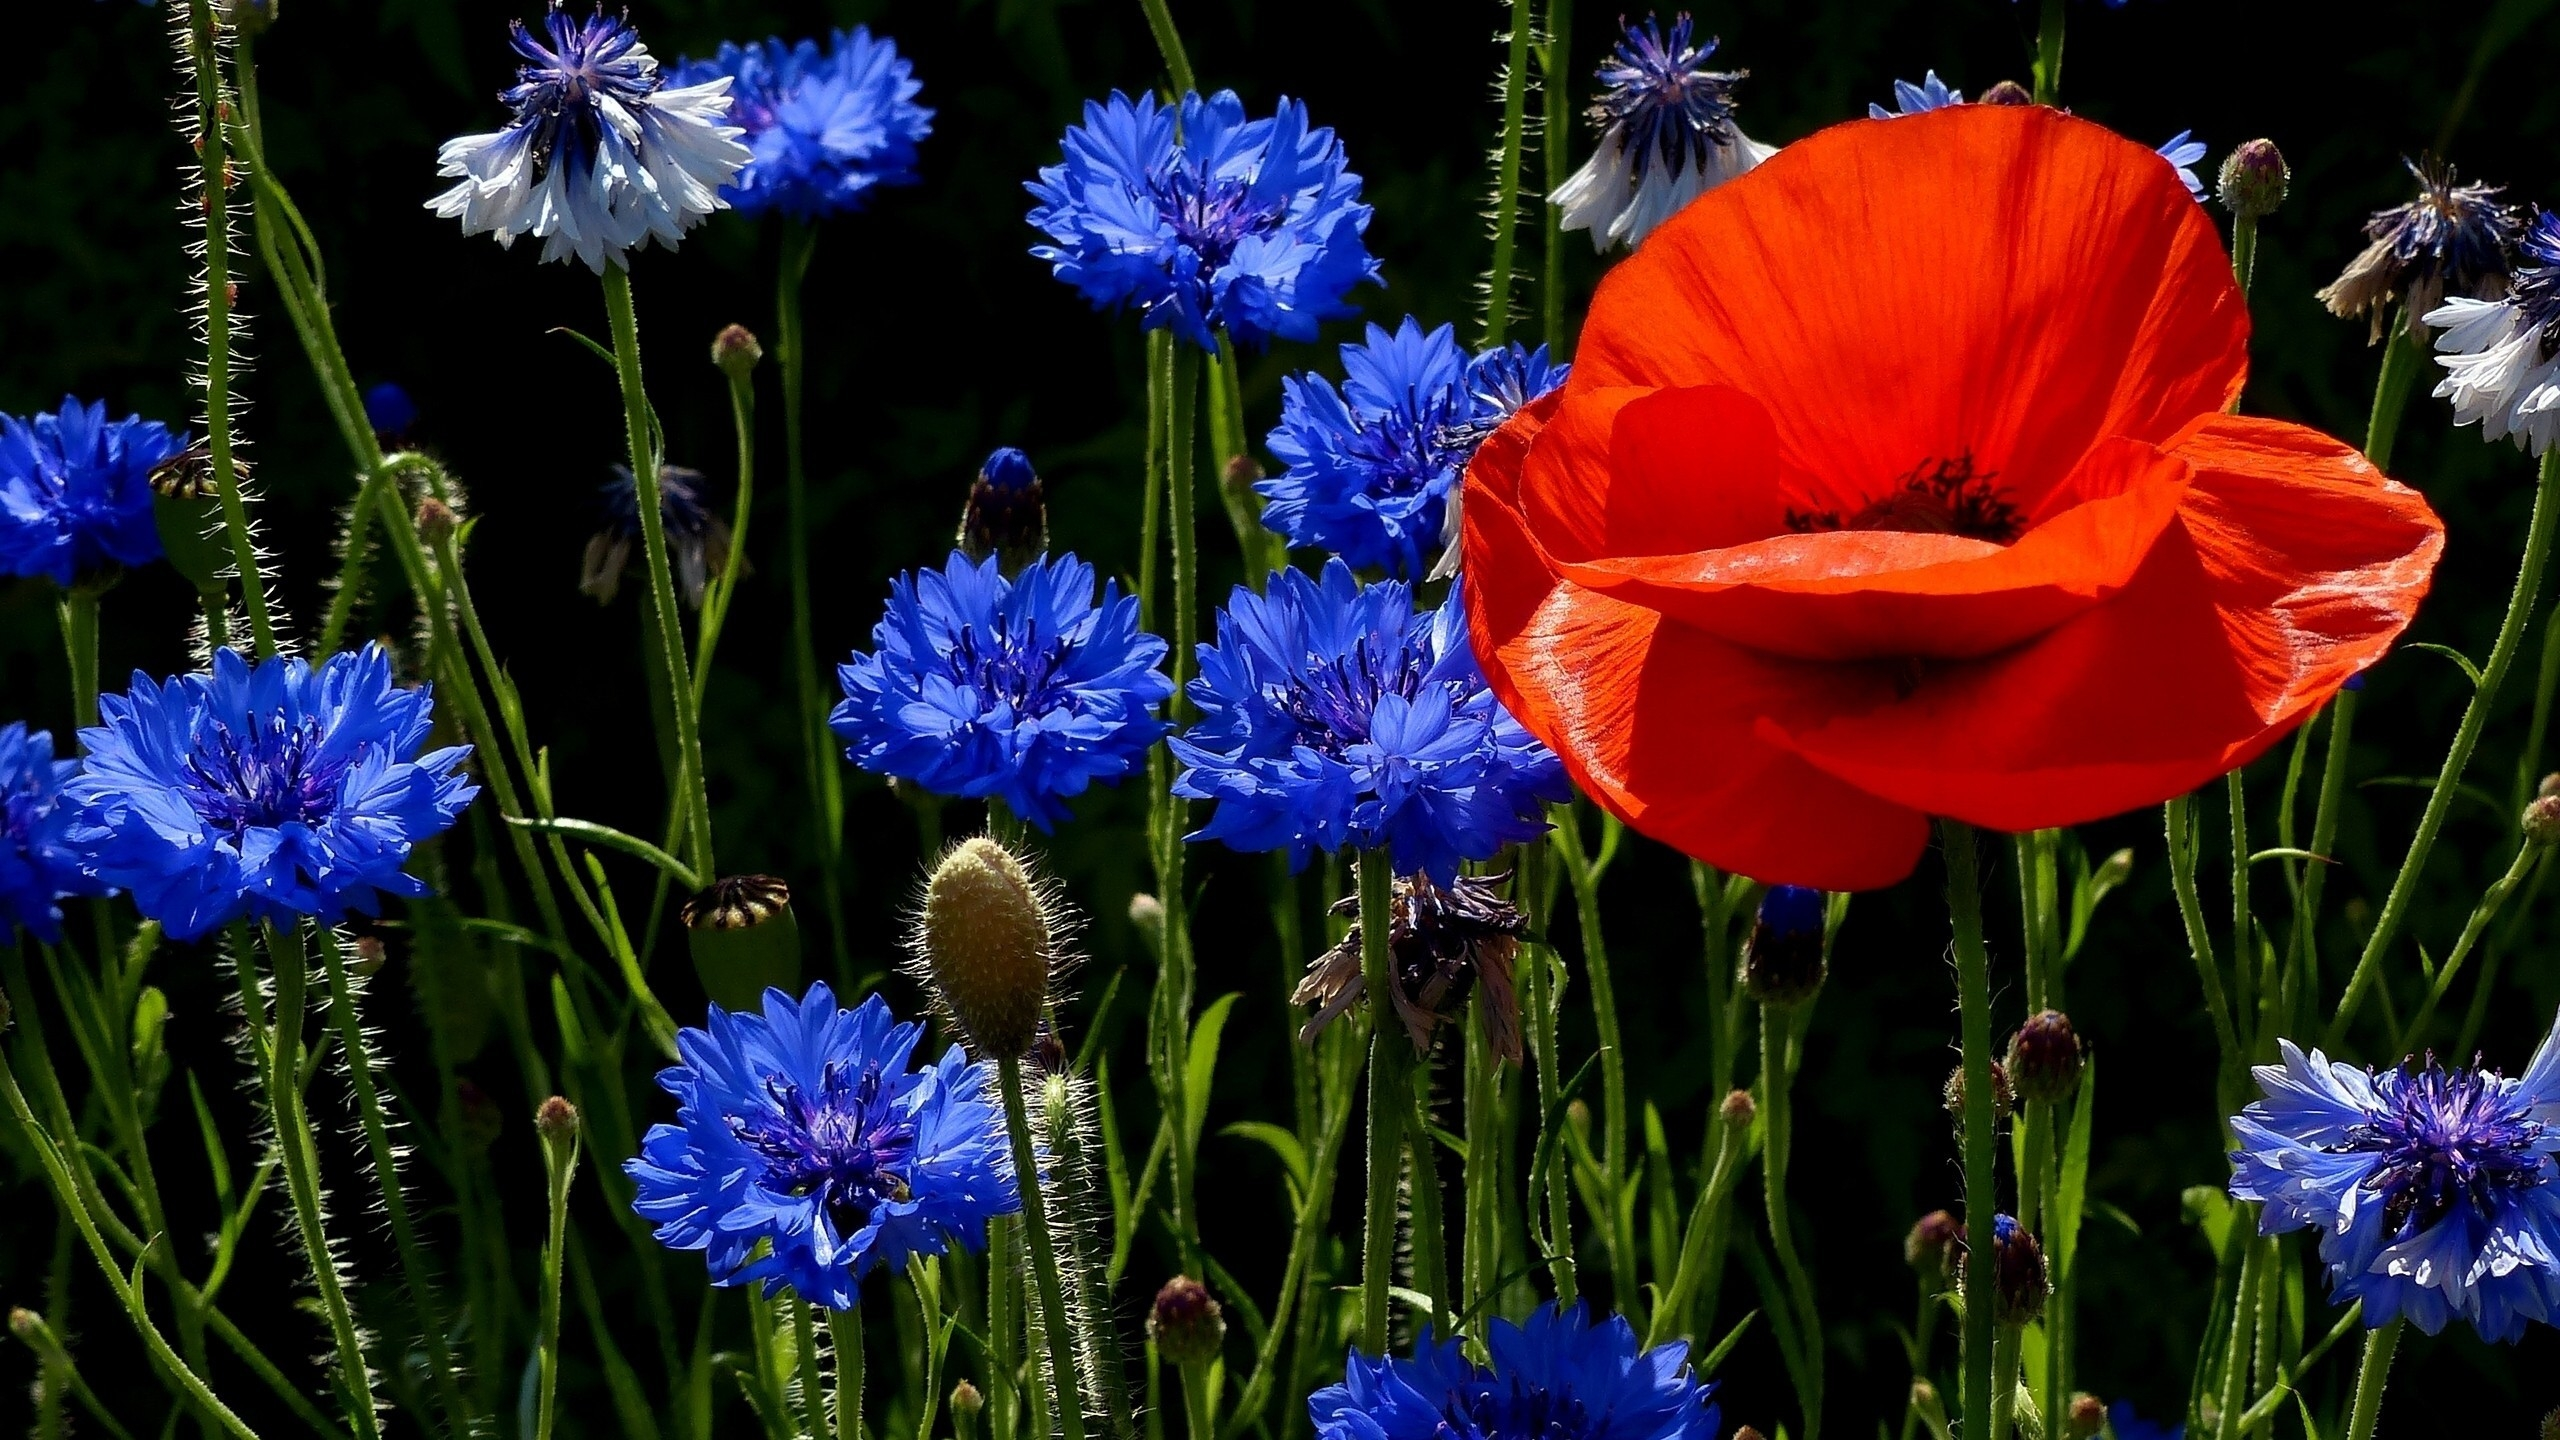 Poppies and Cornflowers for 2560x1440 HDTV resolution